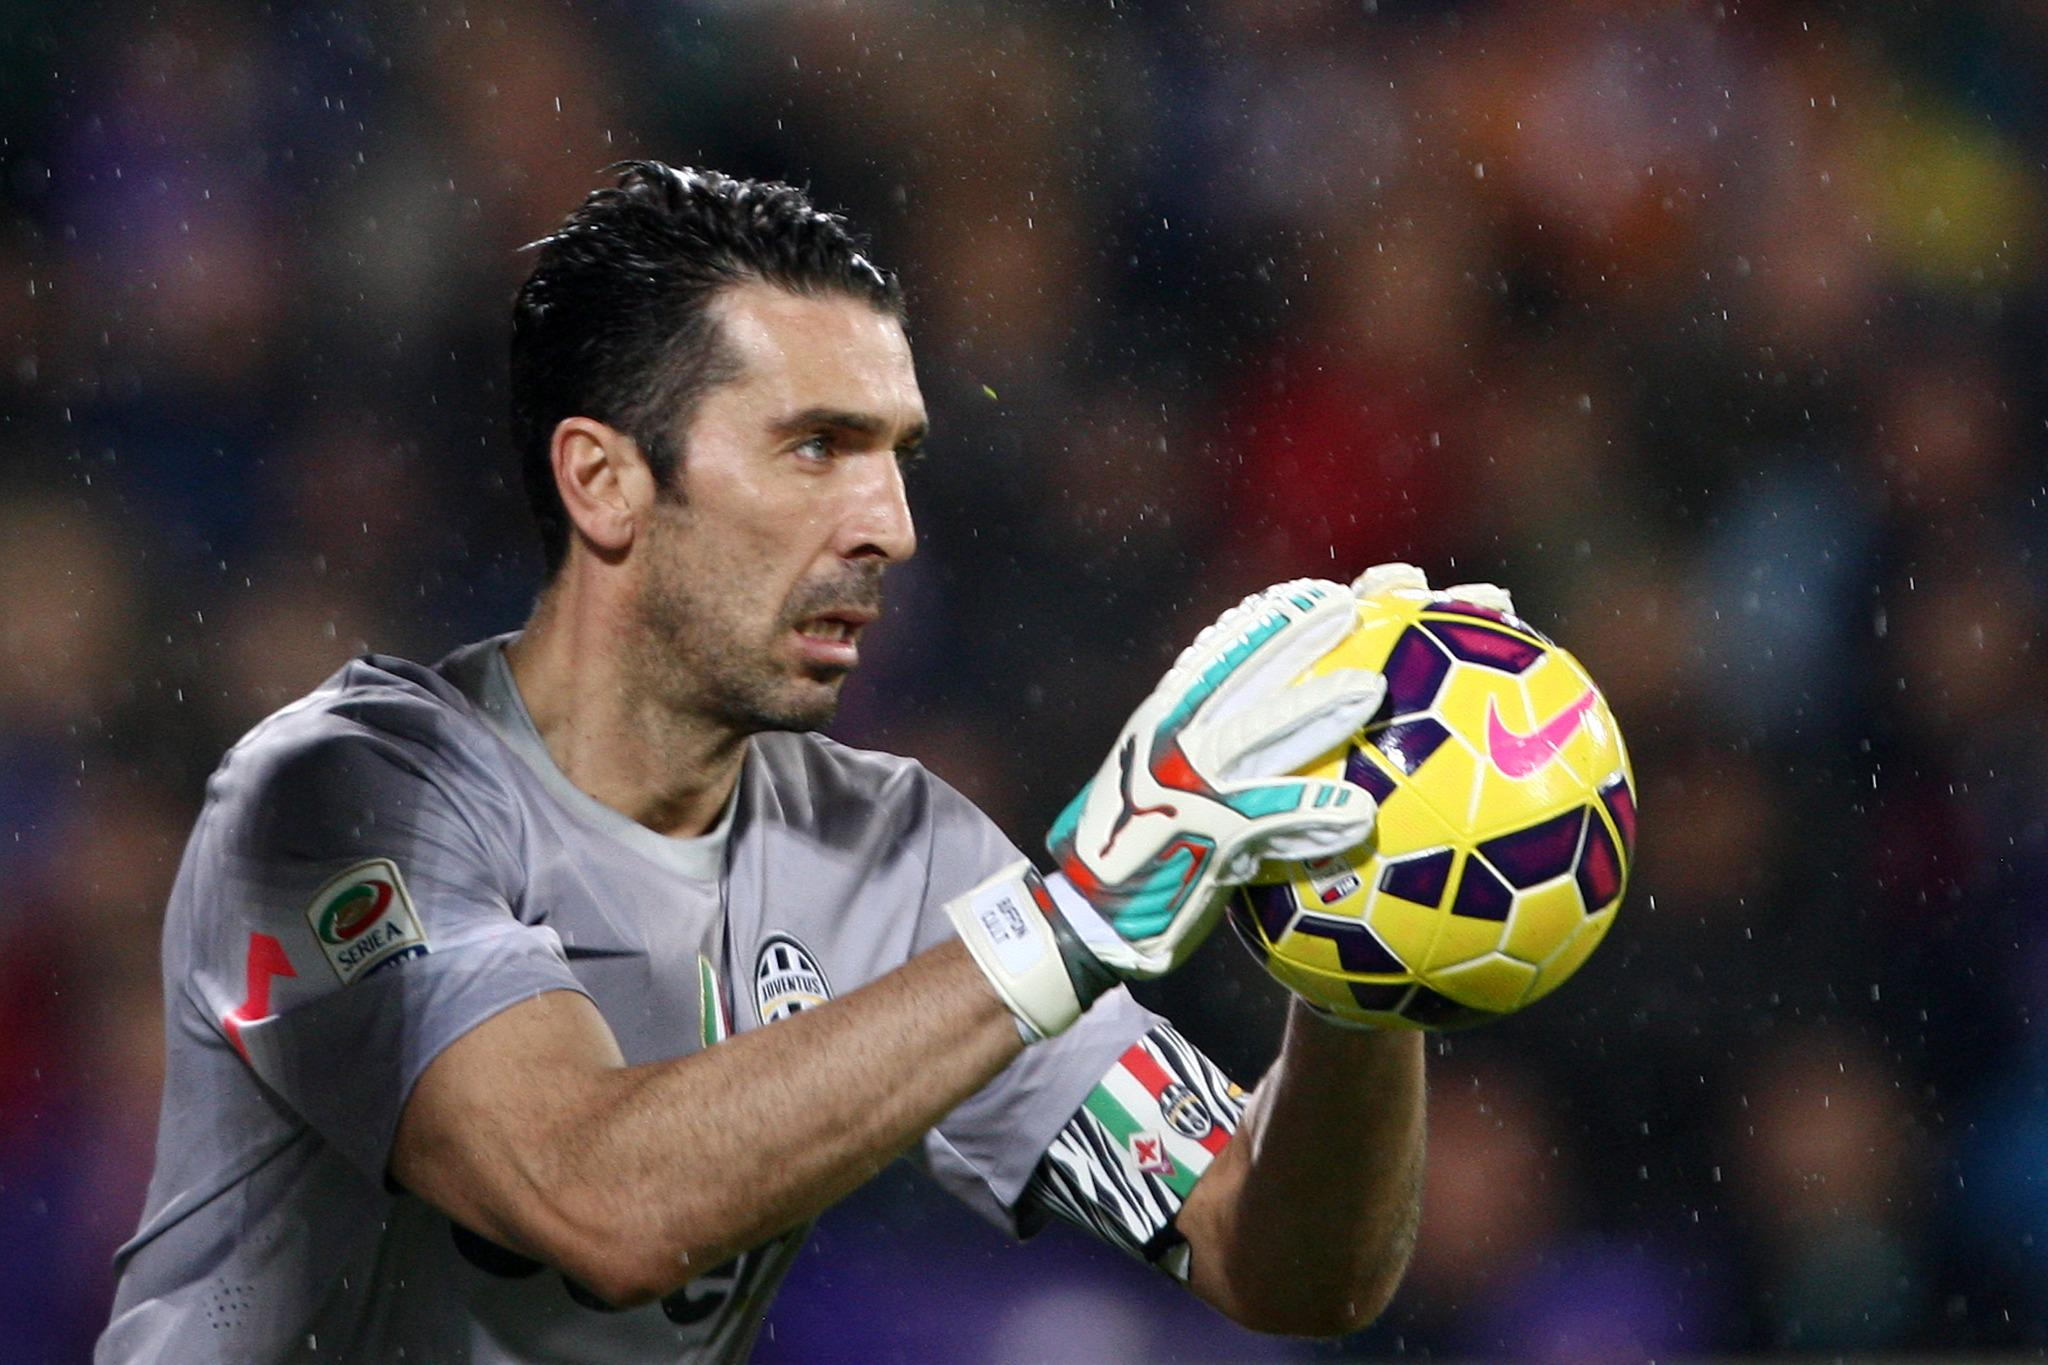 Commenti post Fiorentina-Juve: da Andrea Della Valle all'intervista video di Gigi Buffon.